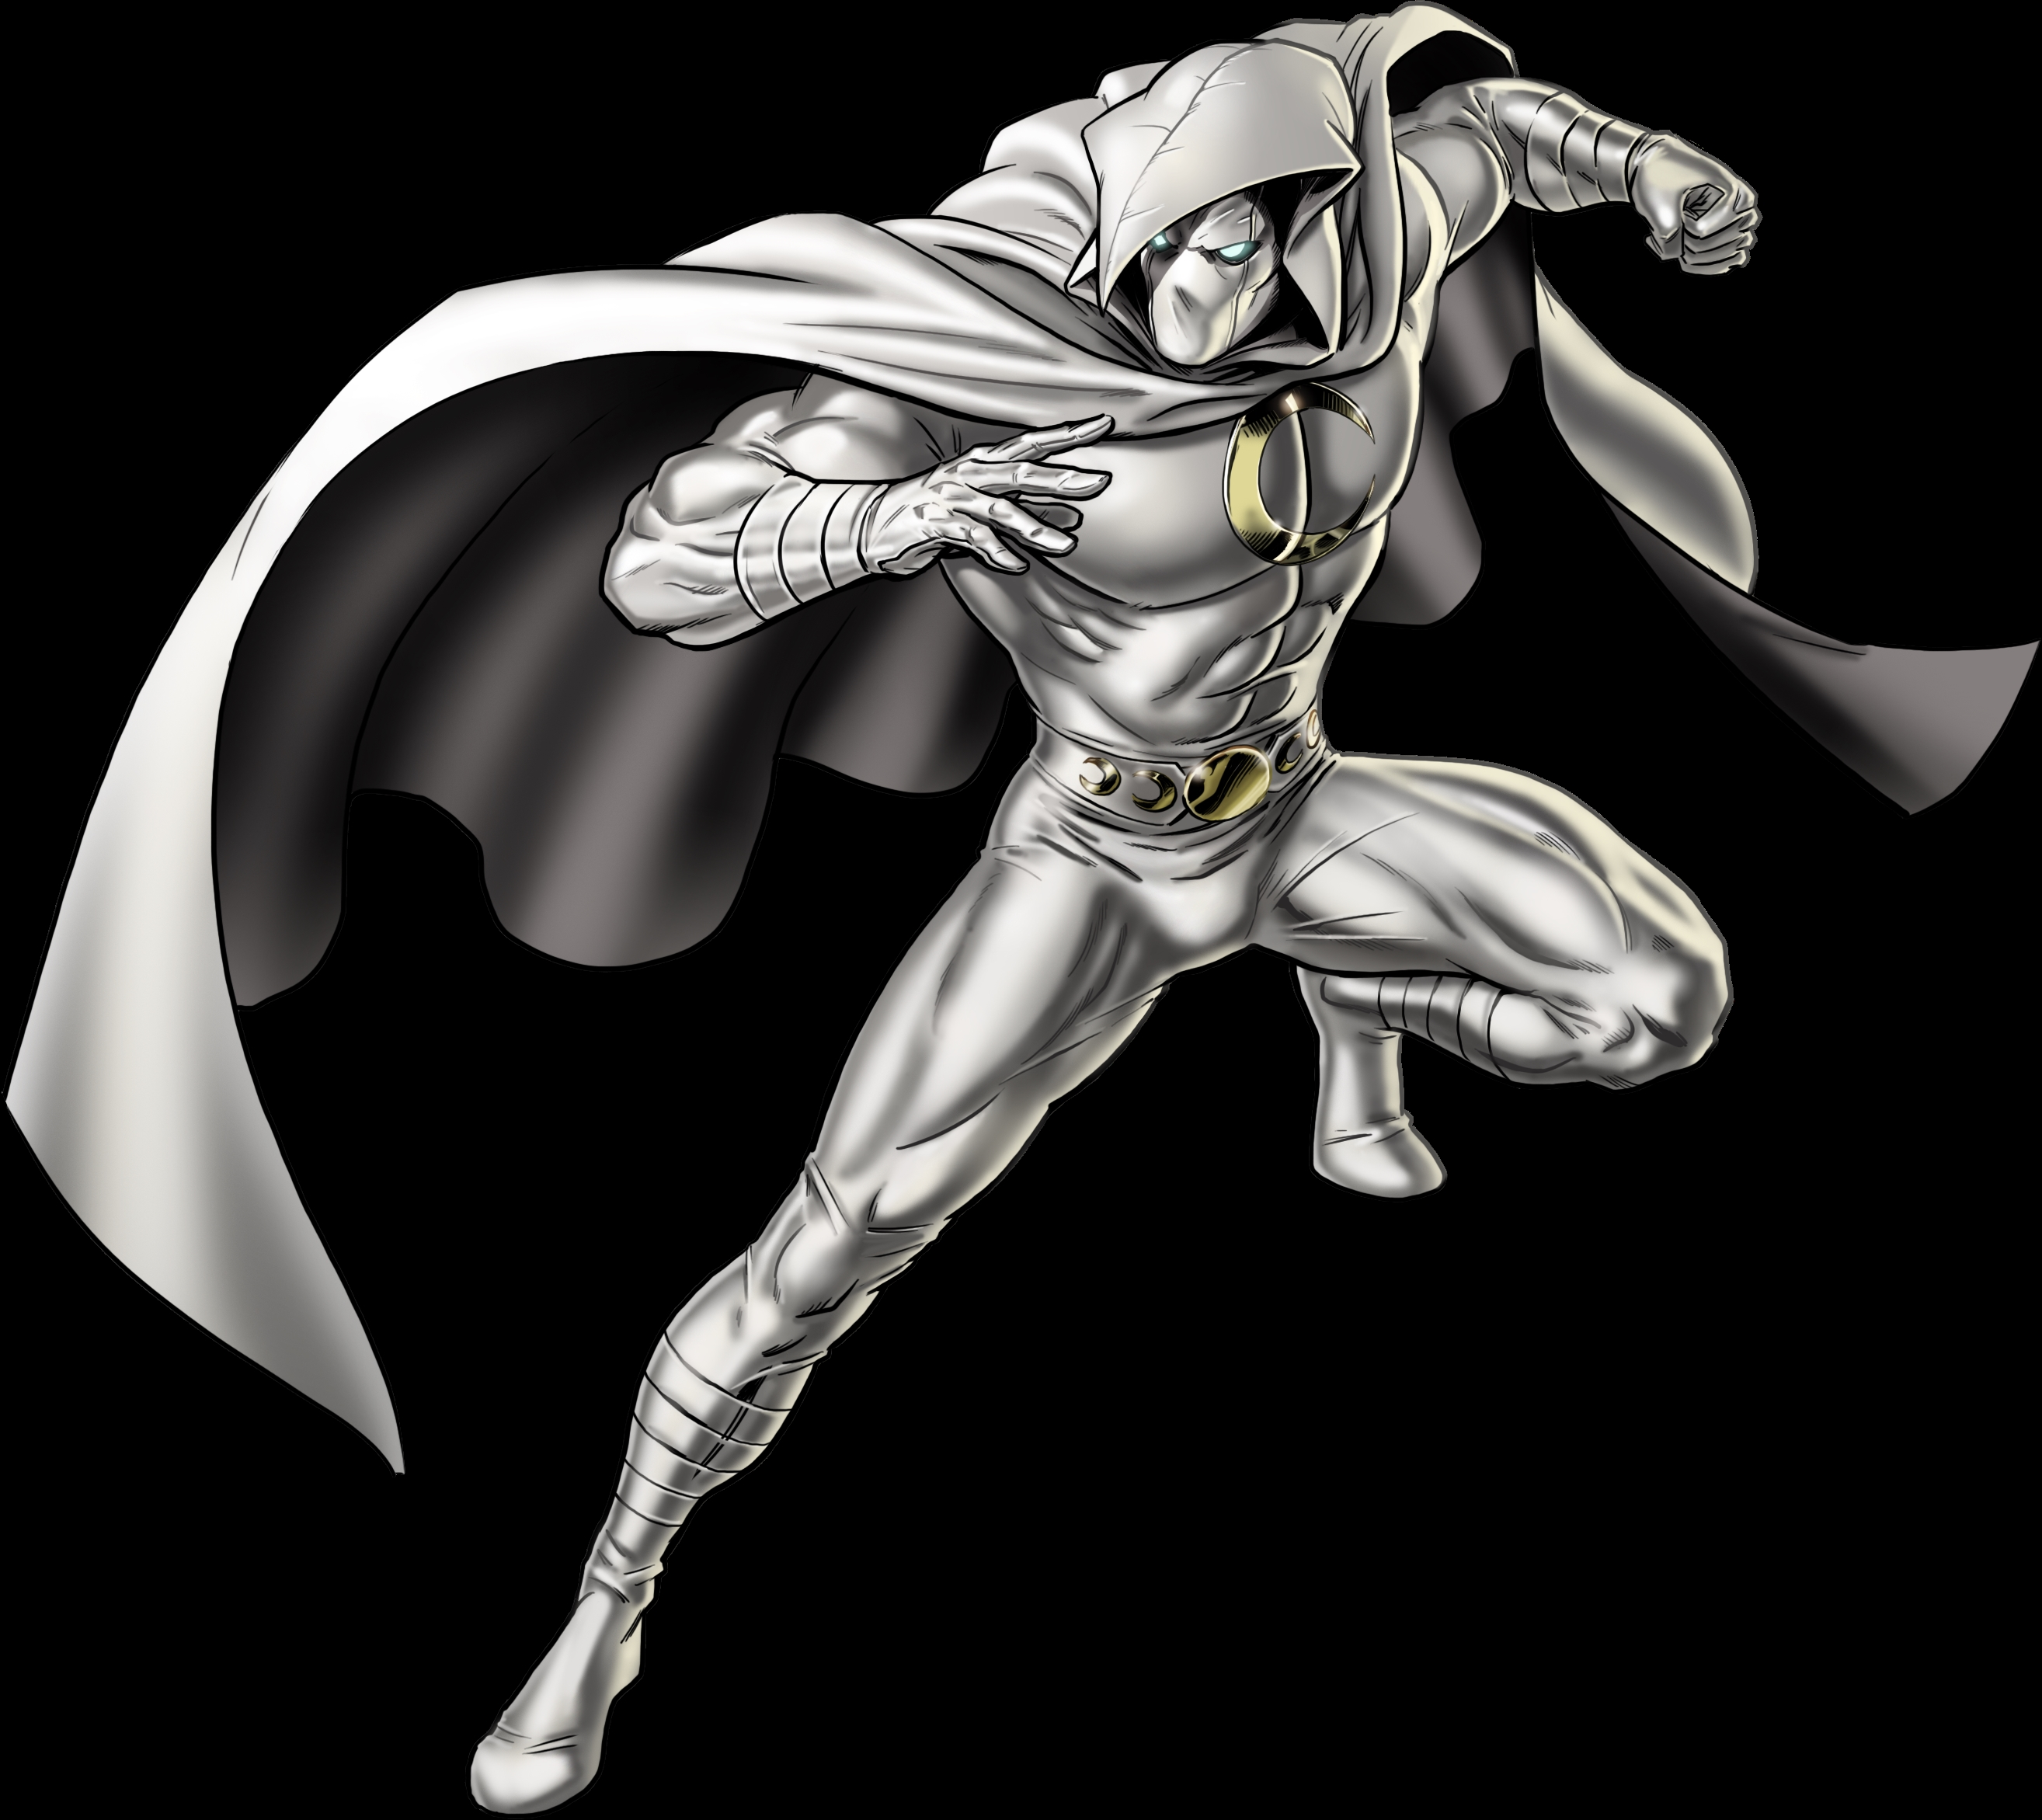 moon knight right portrait art